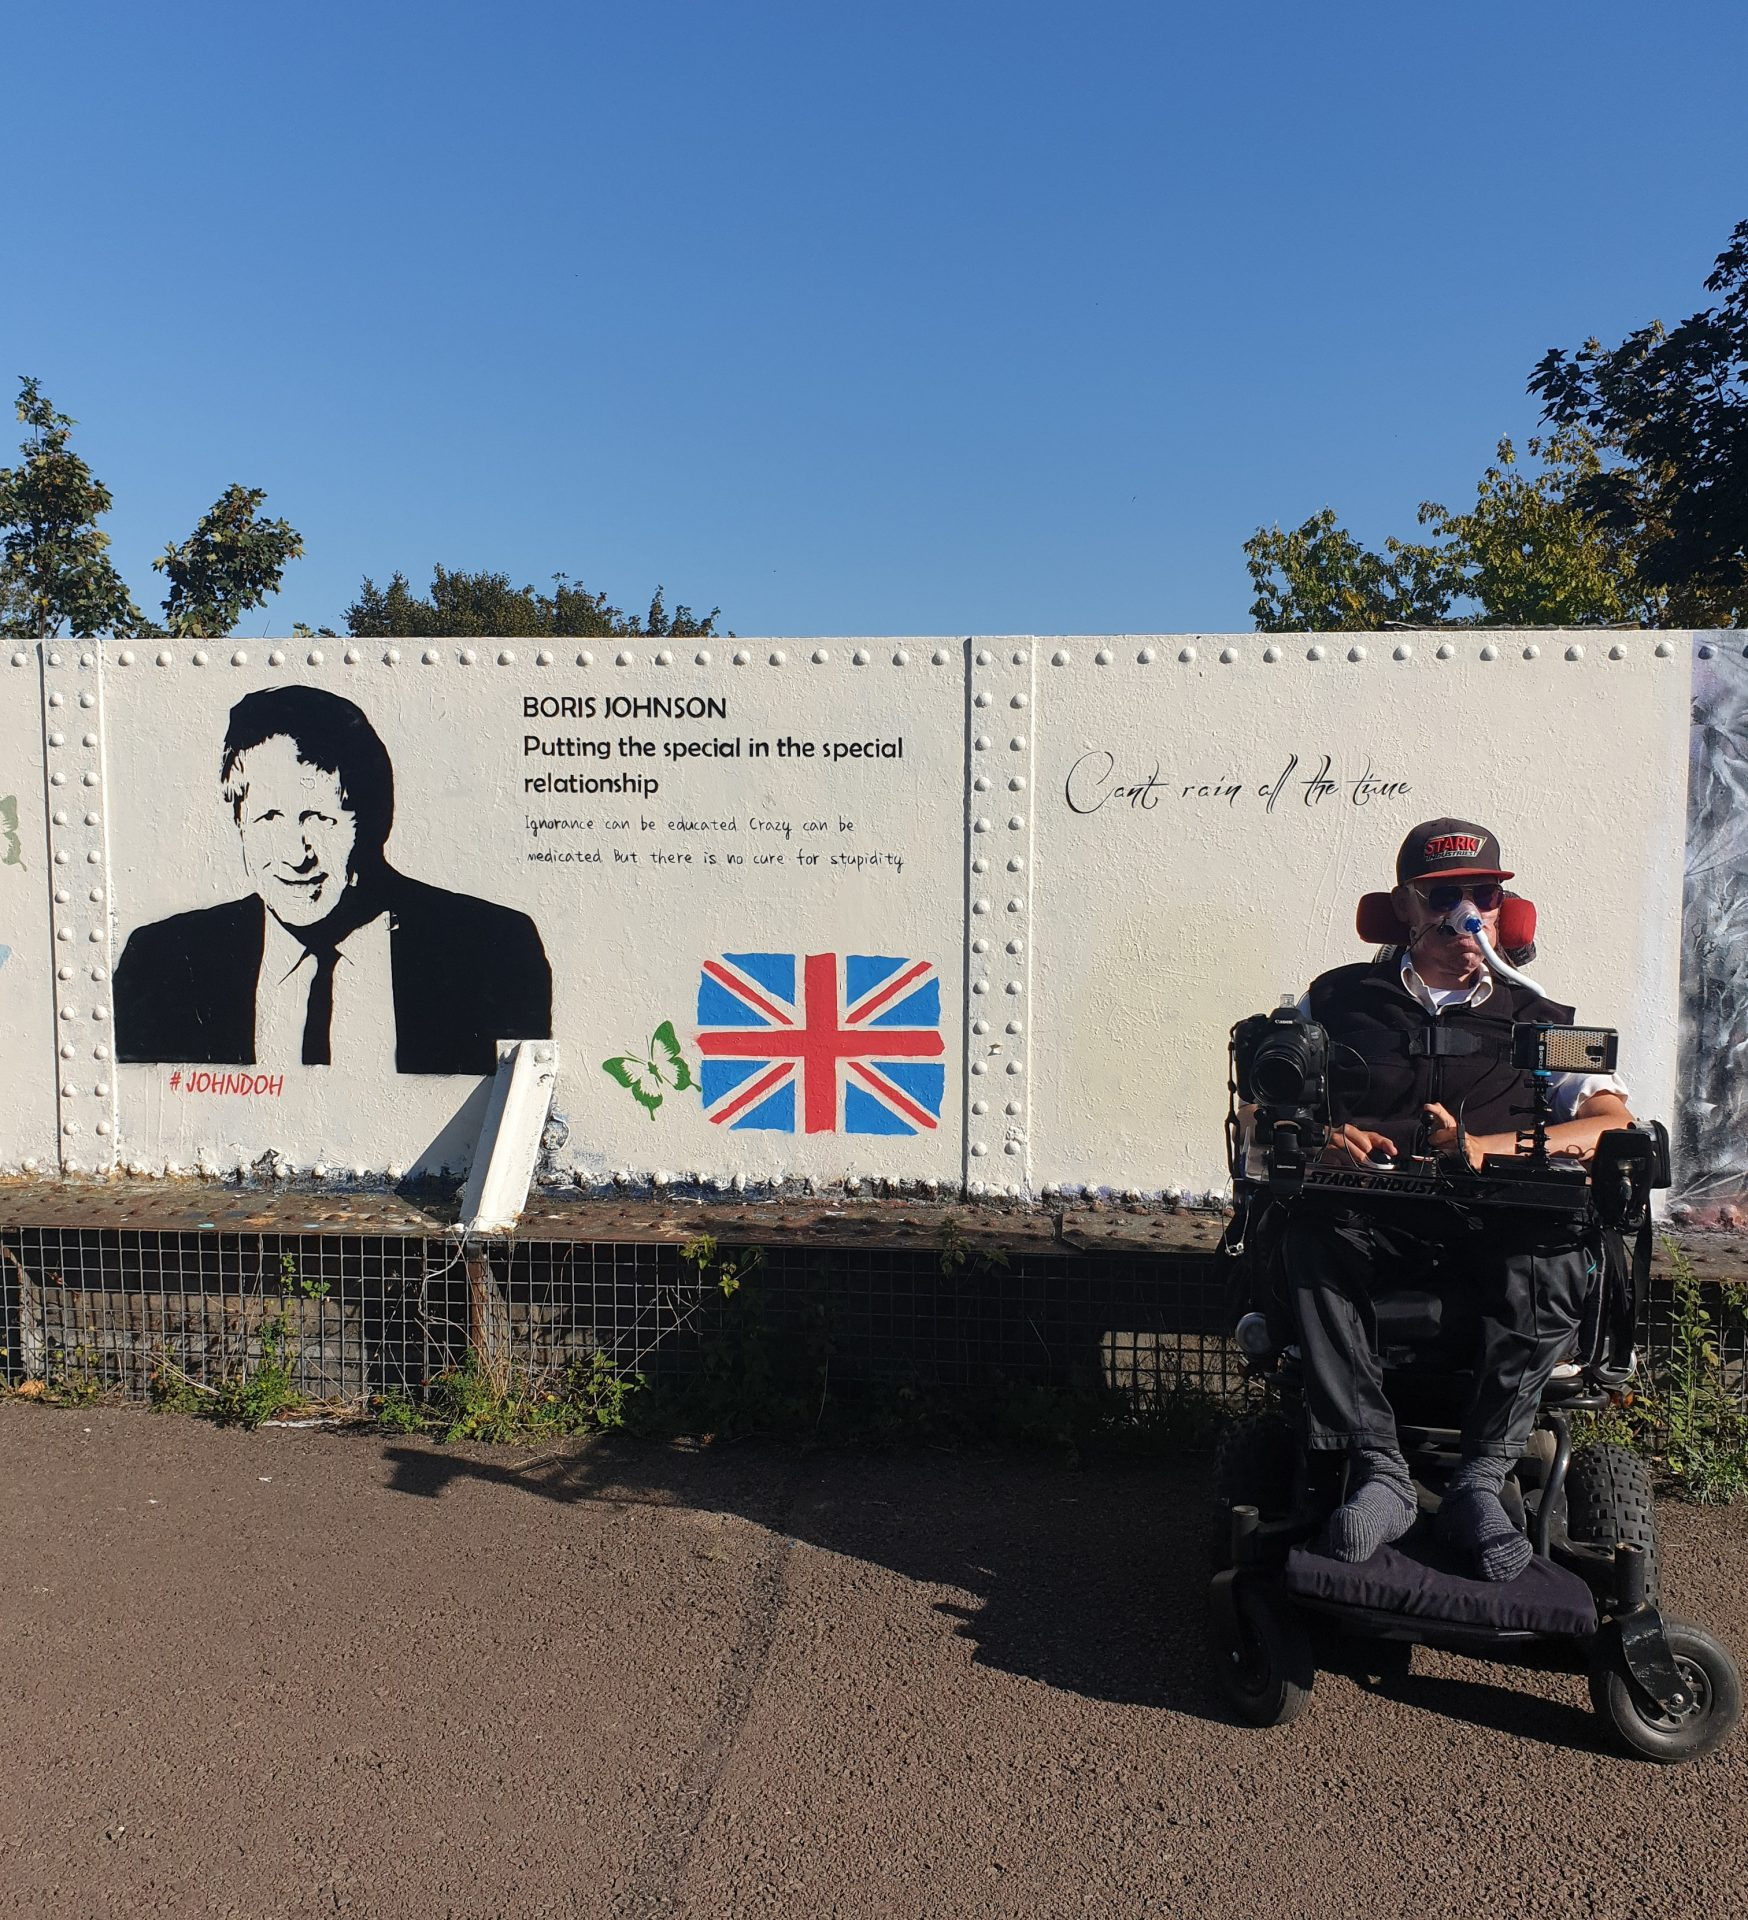 Daniel Baker in front of some graffiti about BorisJohnson